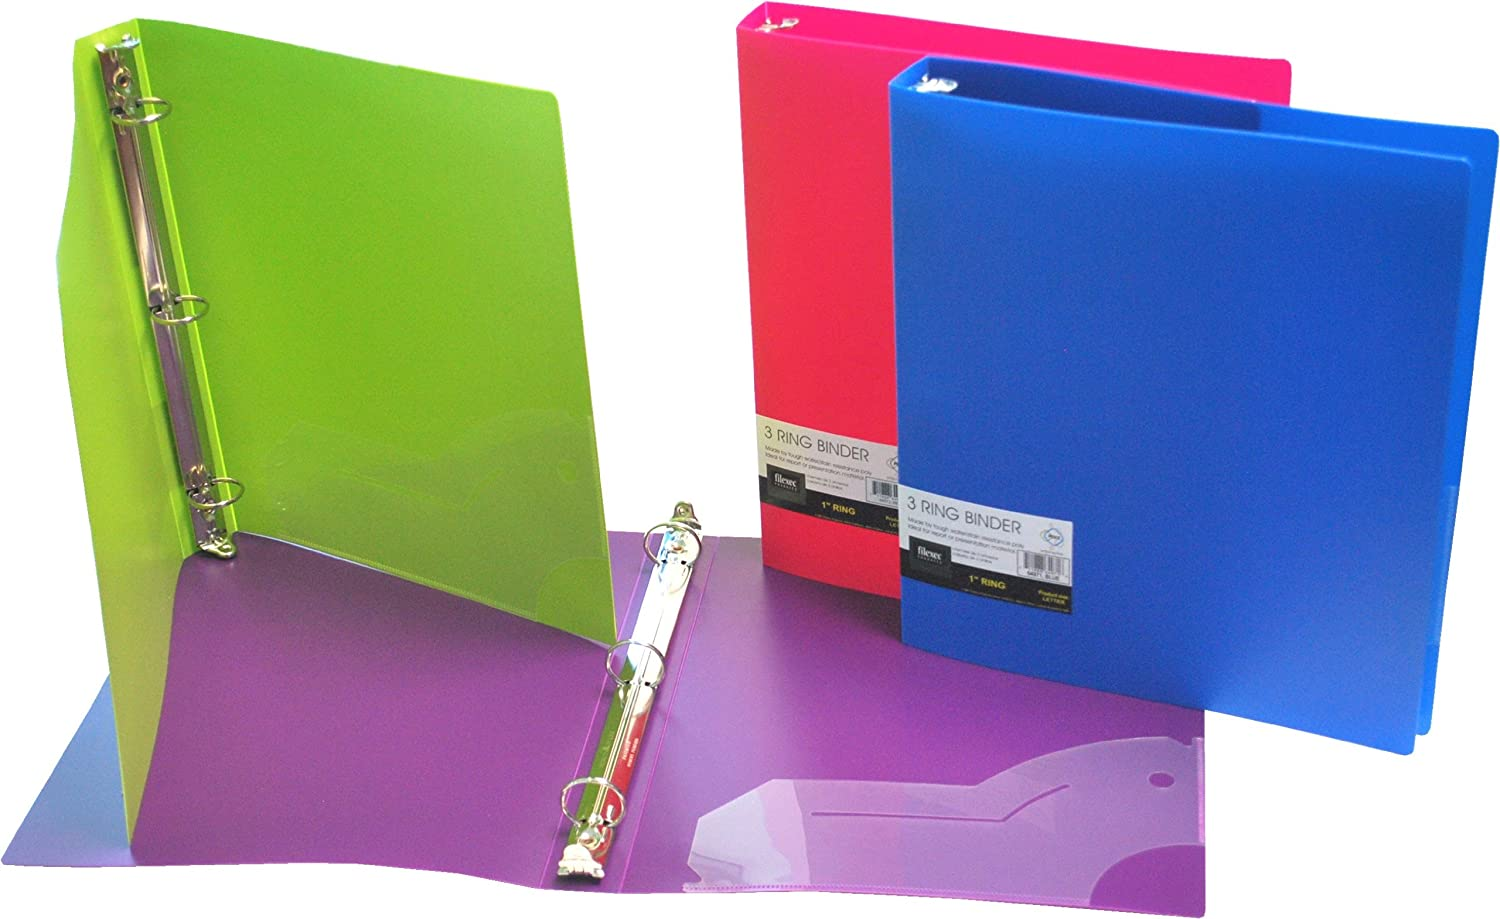 amazon com filexec 3 ring binder 1 inch capacity opaque letter